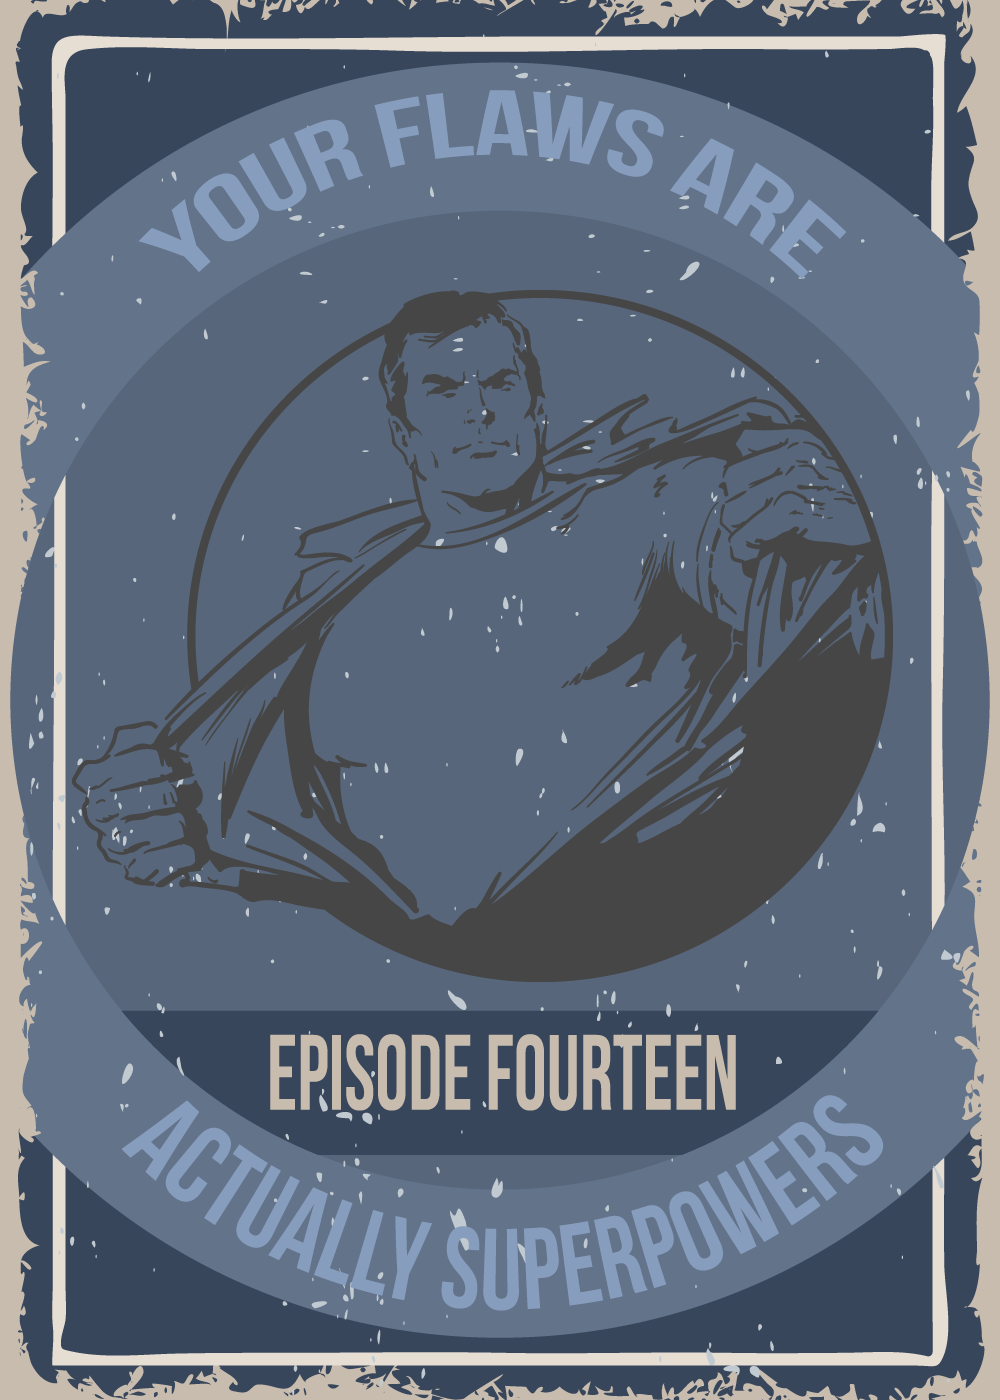 EP 014 – Your Flaws Are Actually Superpowers